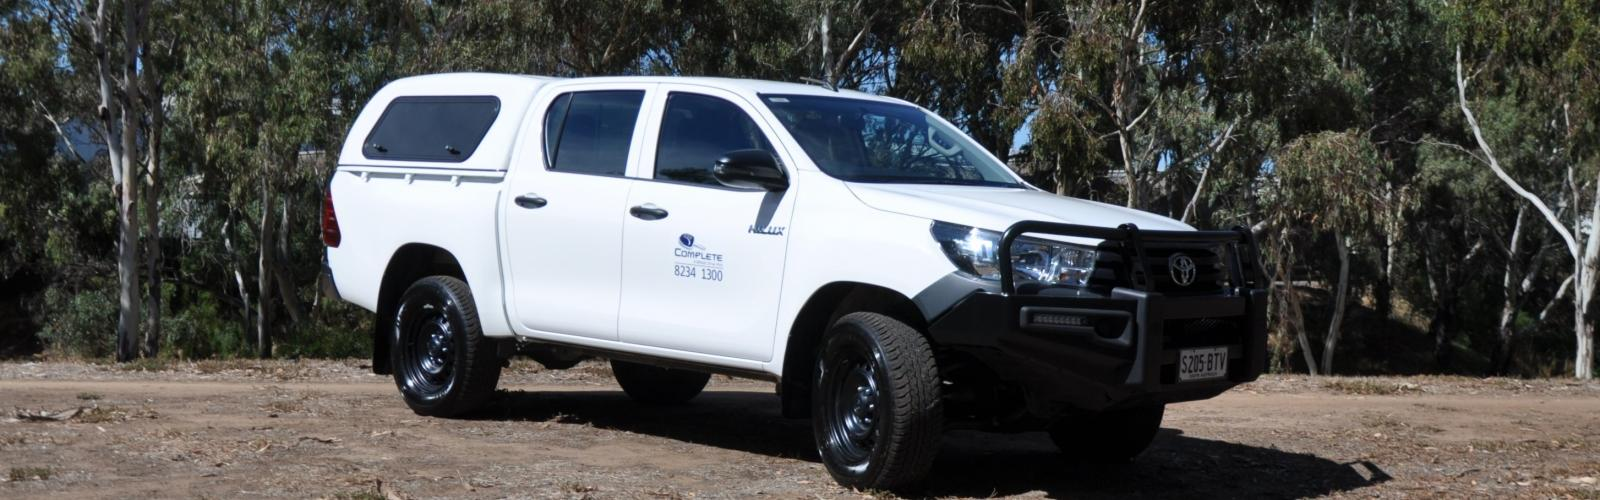 4WD Toyota Hilux Dual Cab Canopy 4WD Hire 2